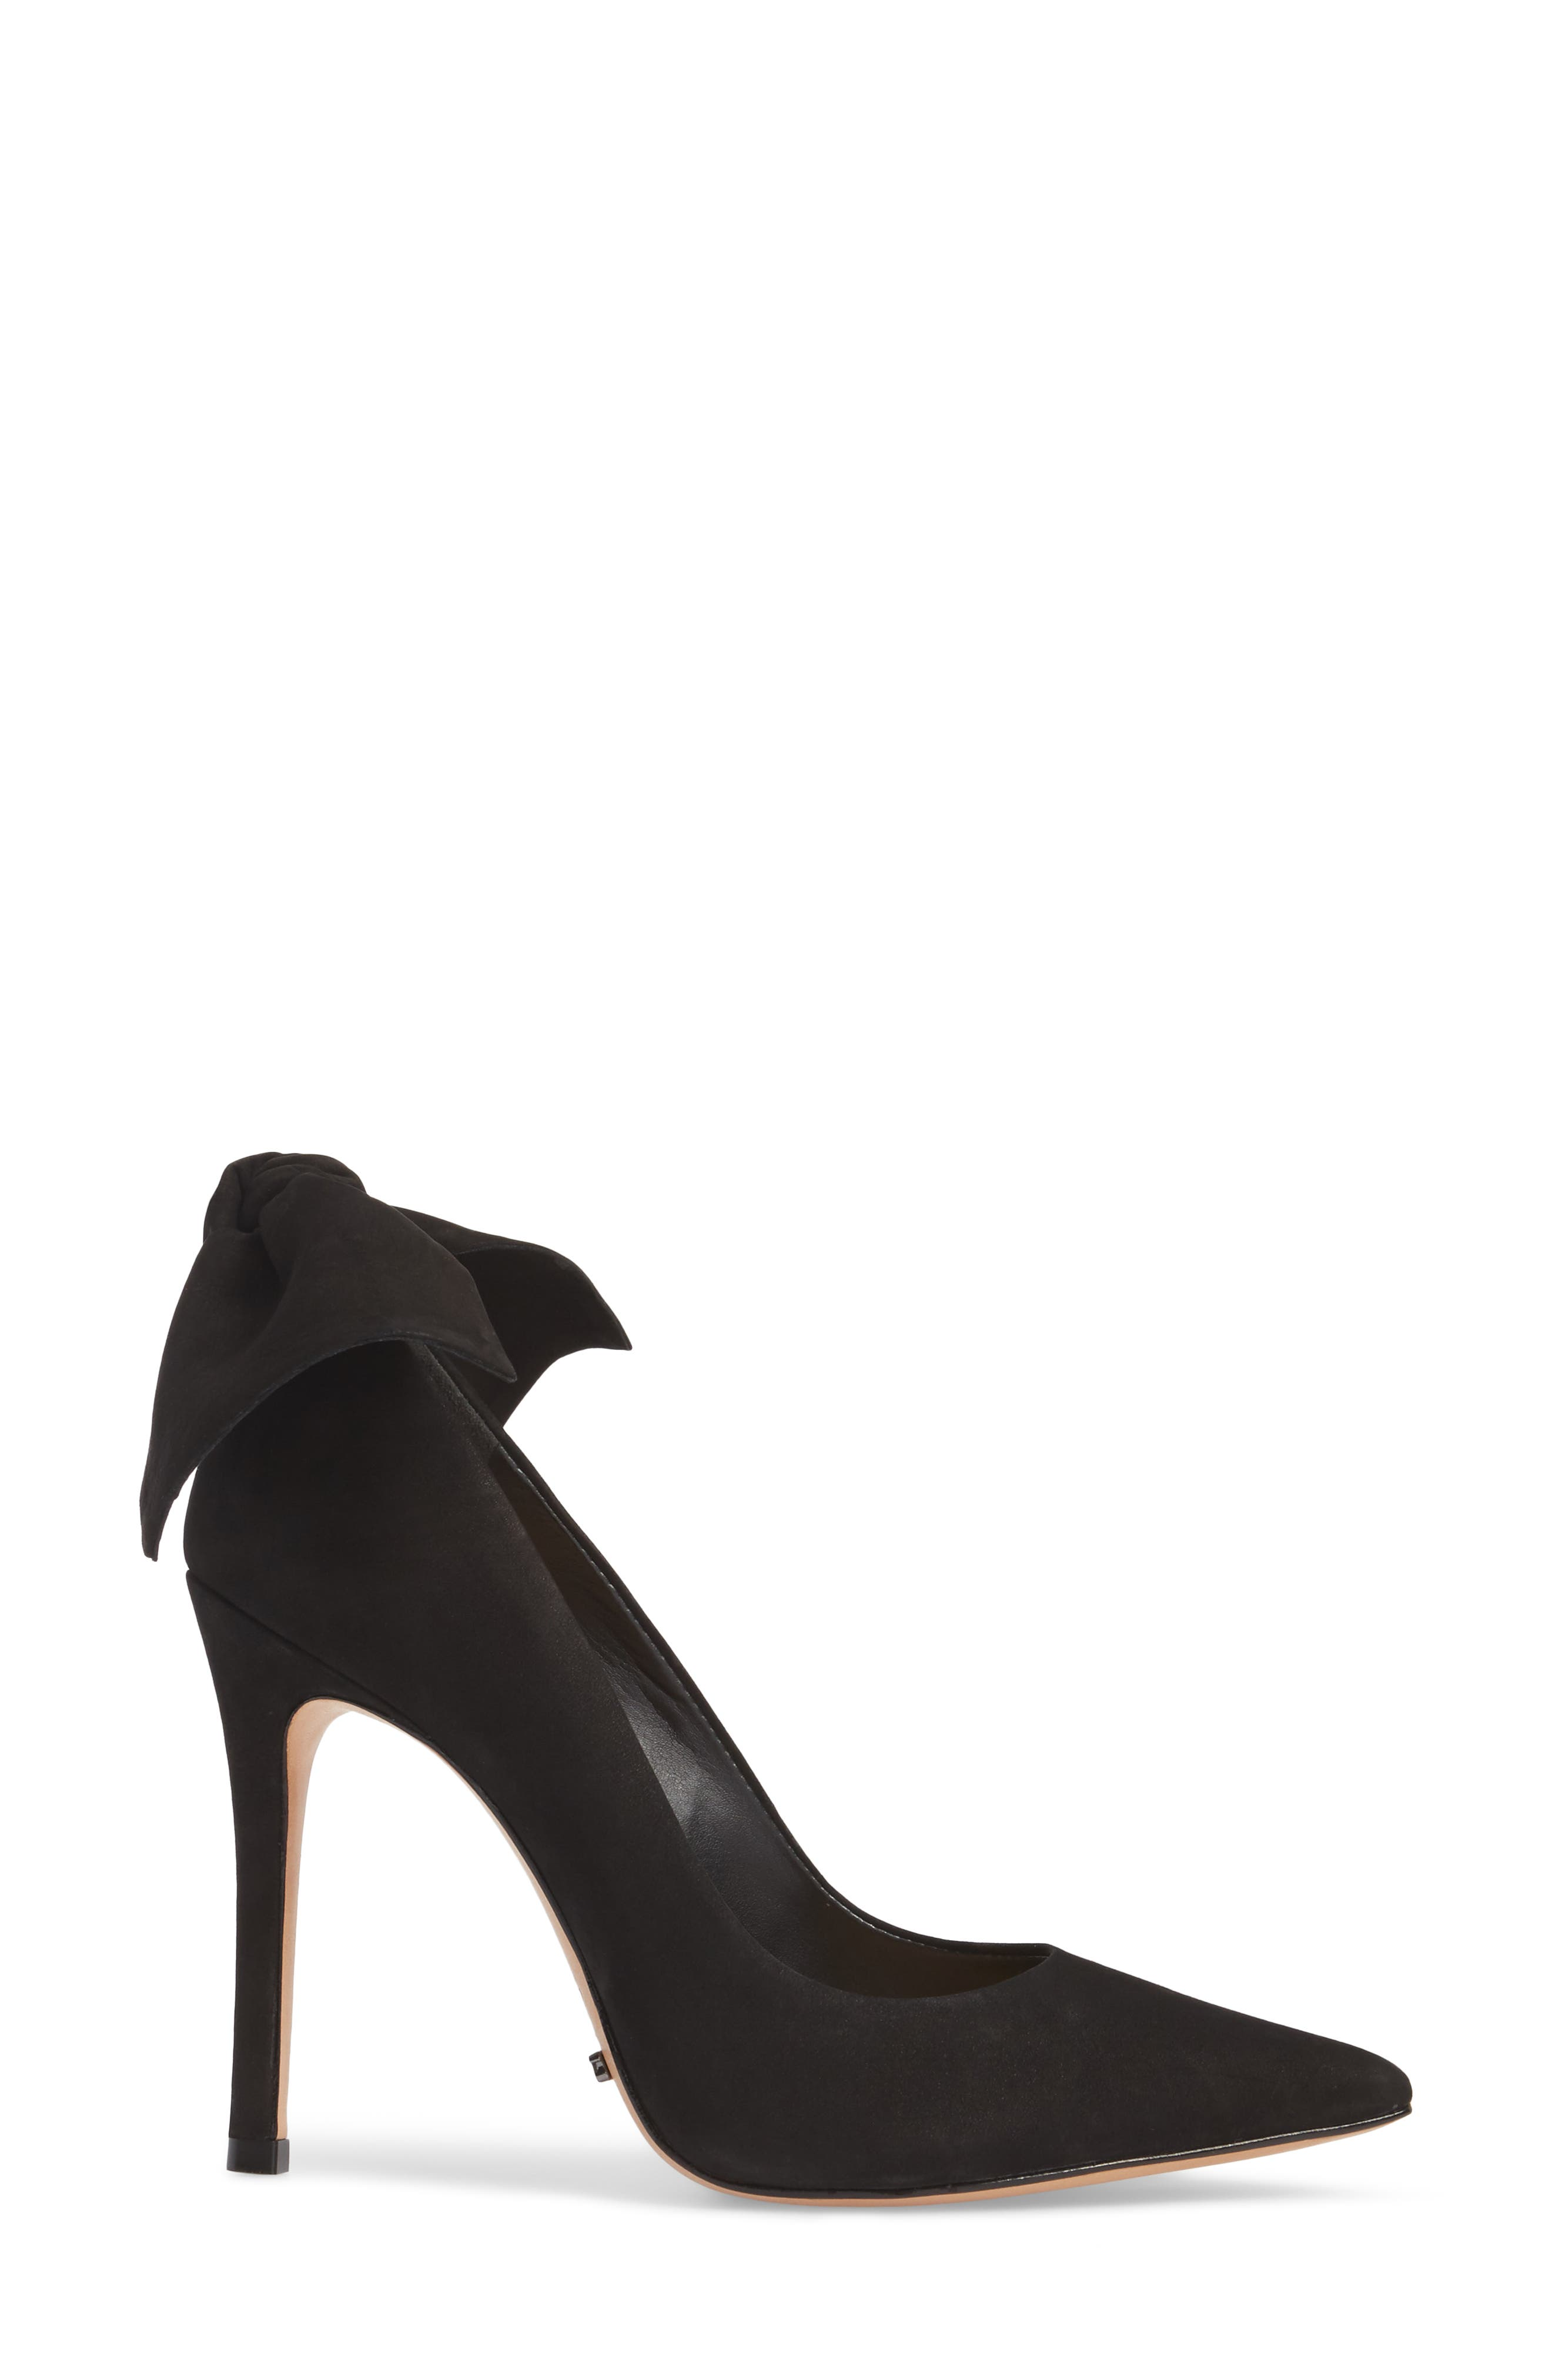 SCHUTZ,                             Blasiana Bow Pump,                             Alternate thumbnail 3, color,                             001